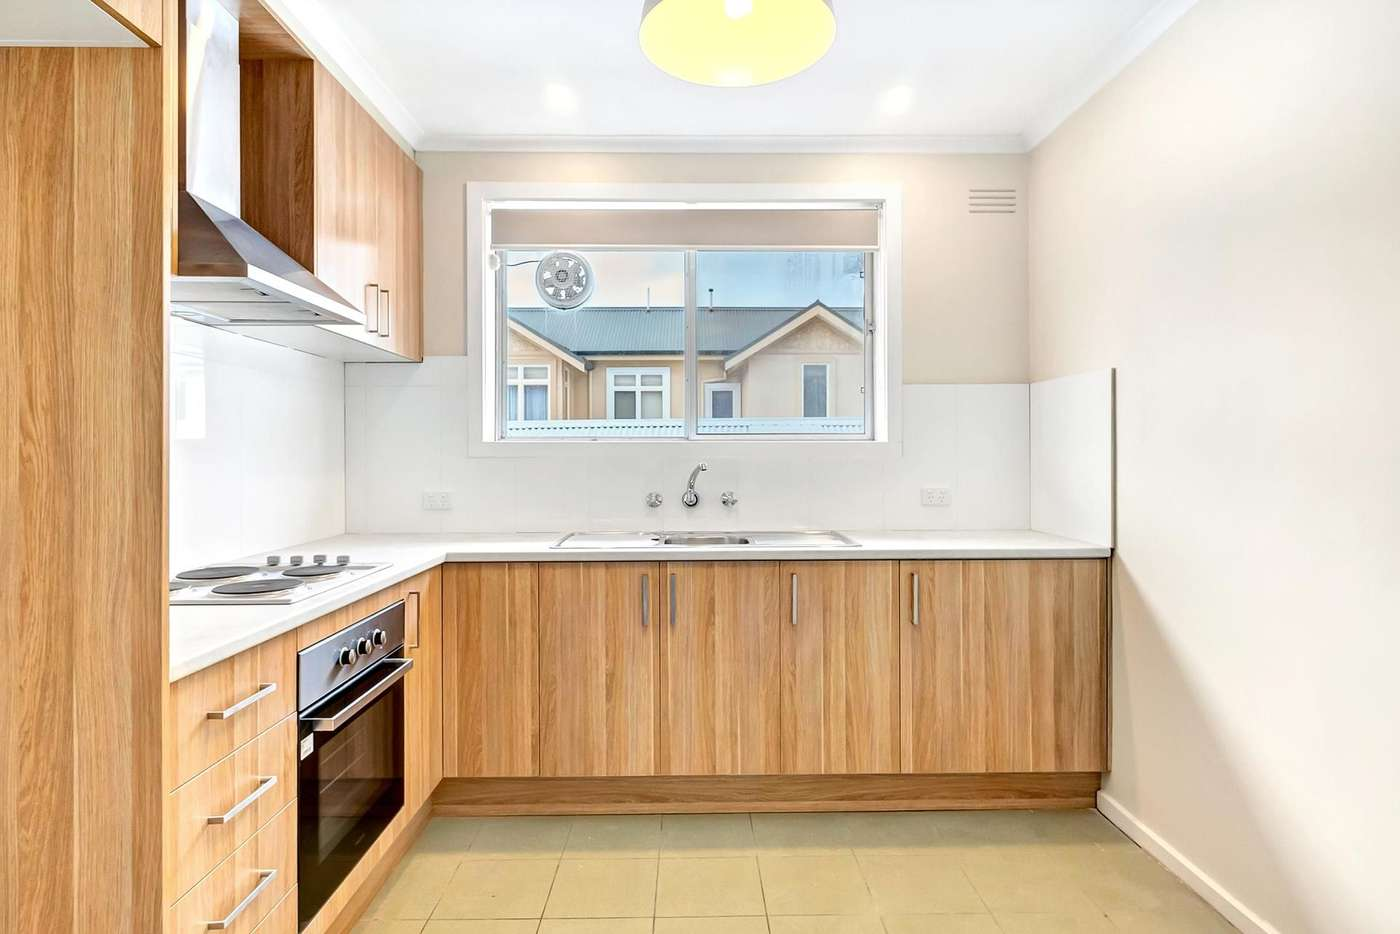 Sixth view of Homely house listing, 8/88 Victoria Street, Williamstown VIC 3016